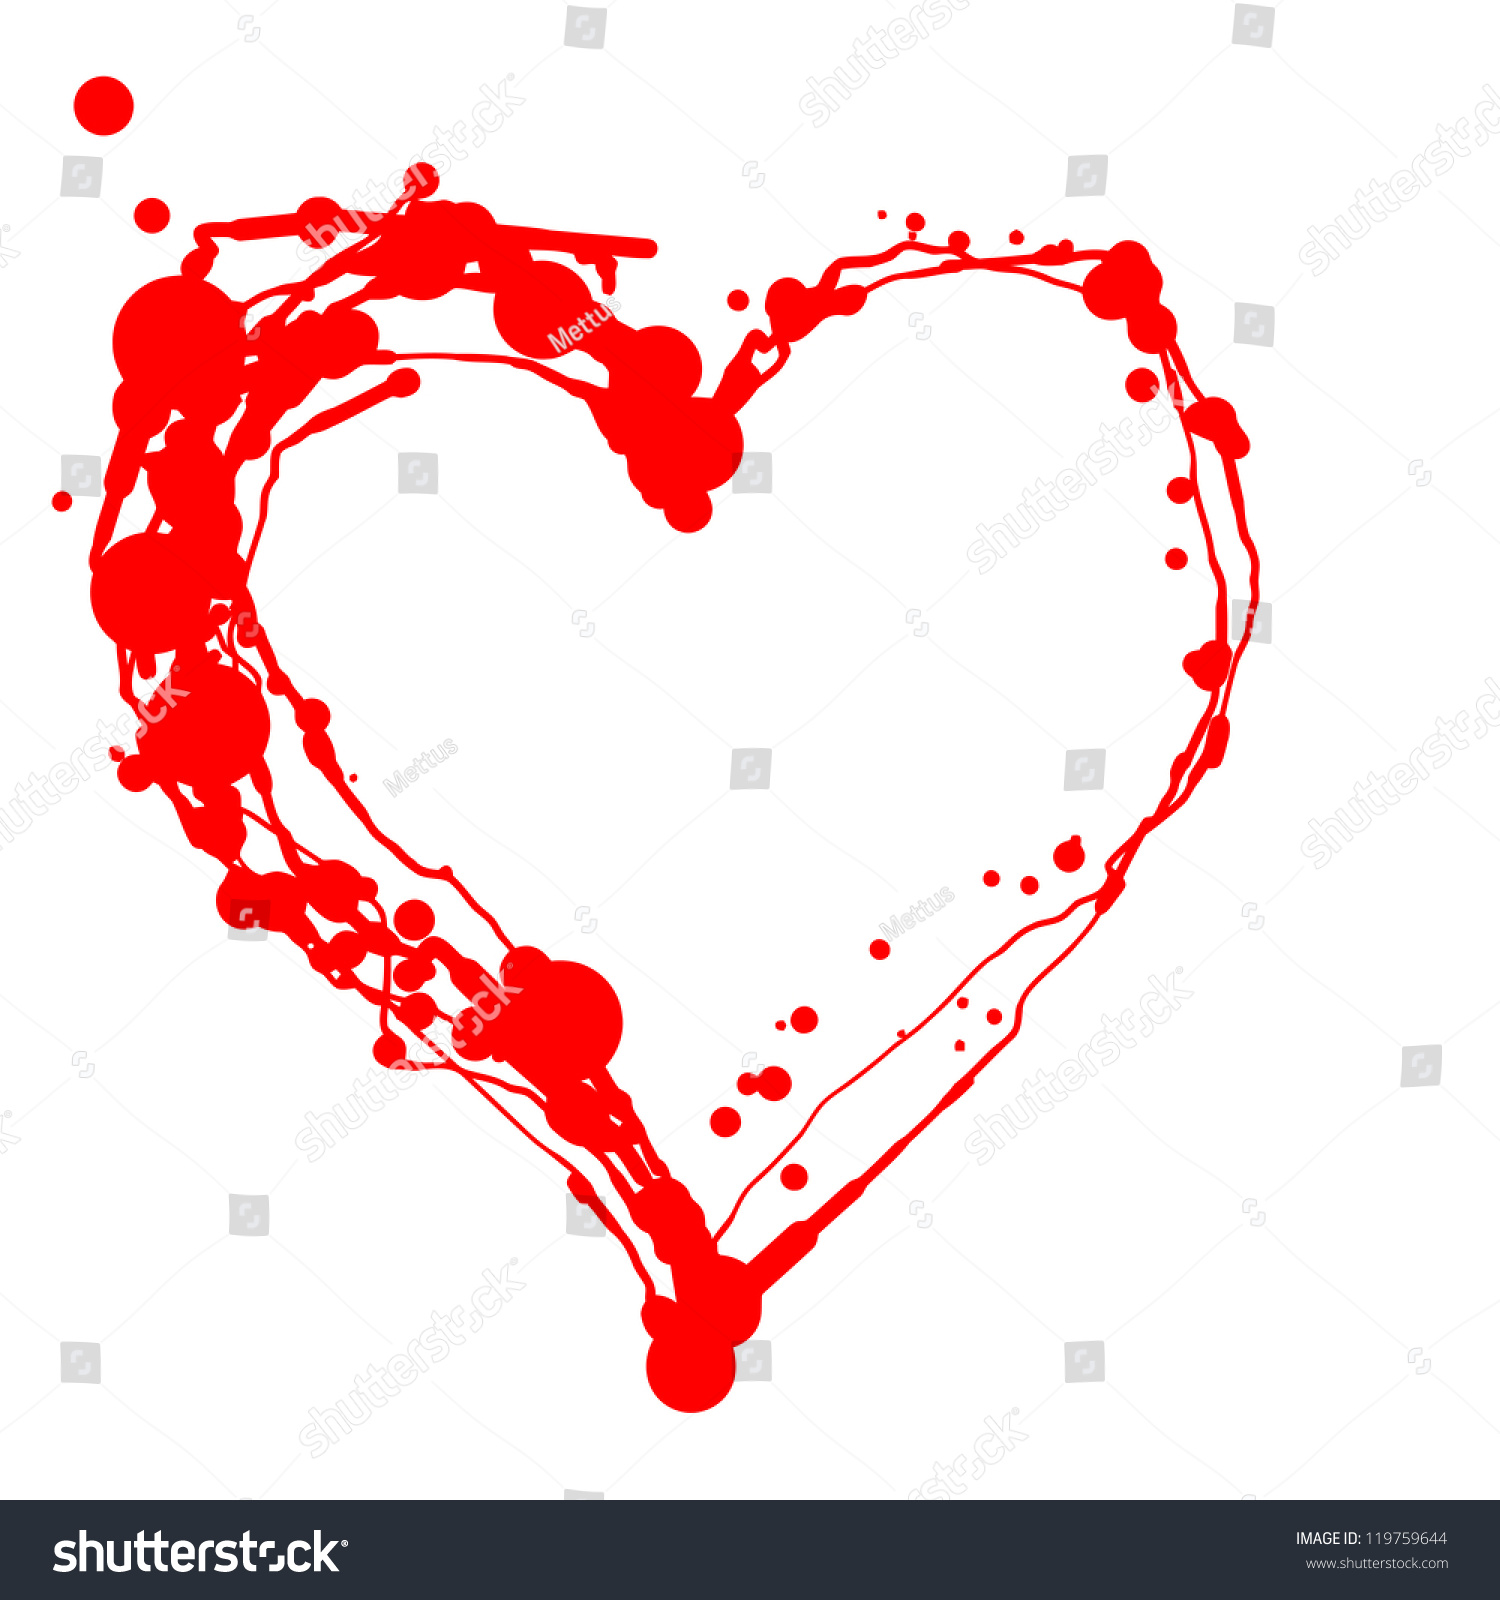 stock-vector-abstract-red-heart-vector-i